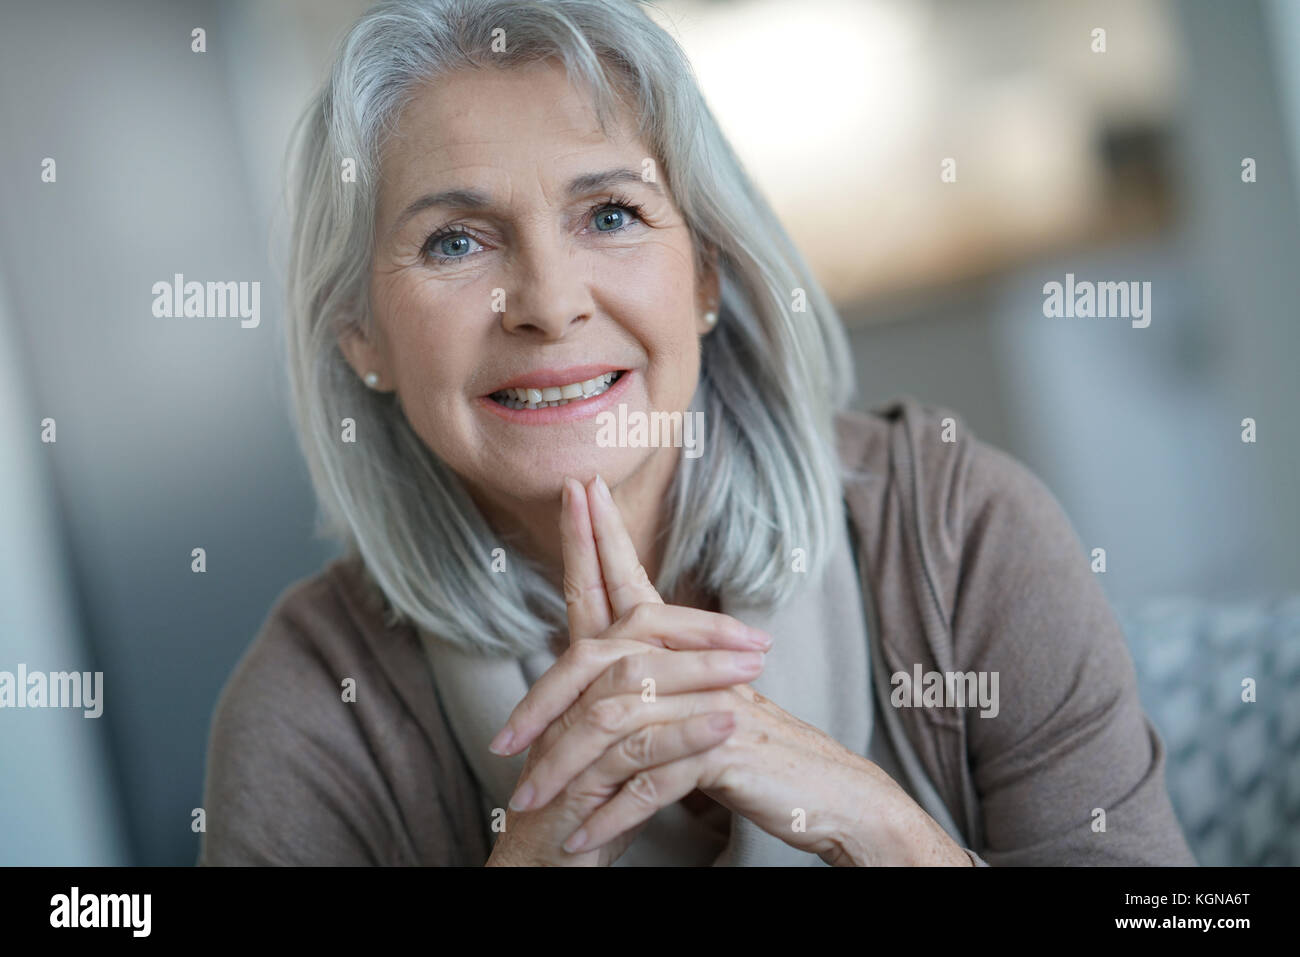 Portrait of beautiful senior woman with white hair - Stock Image